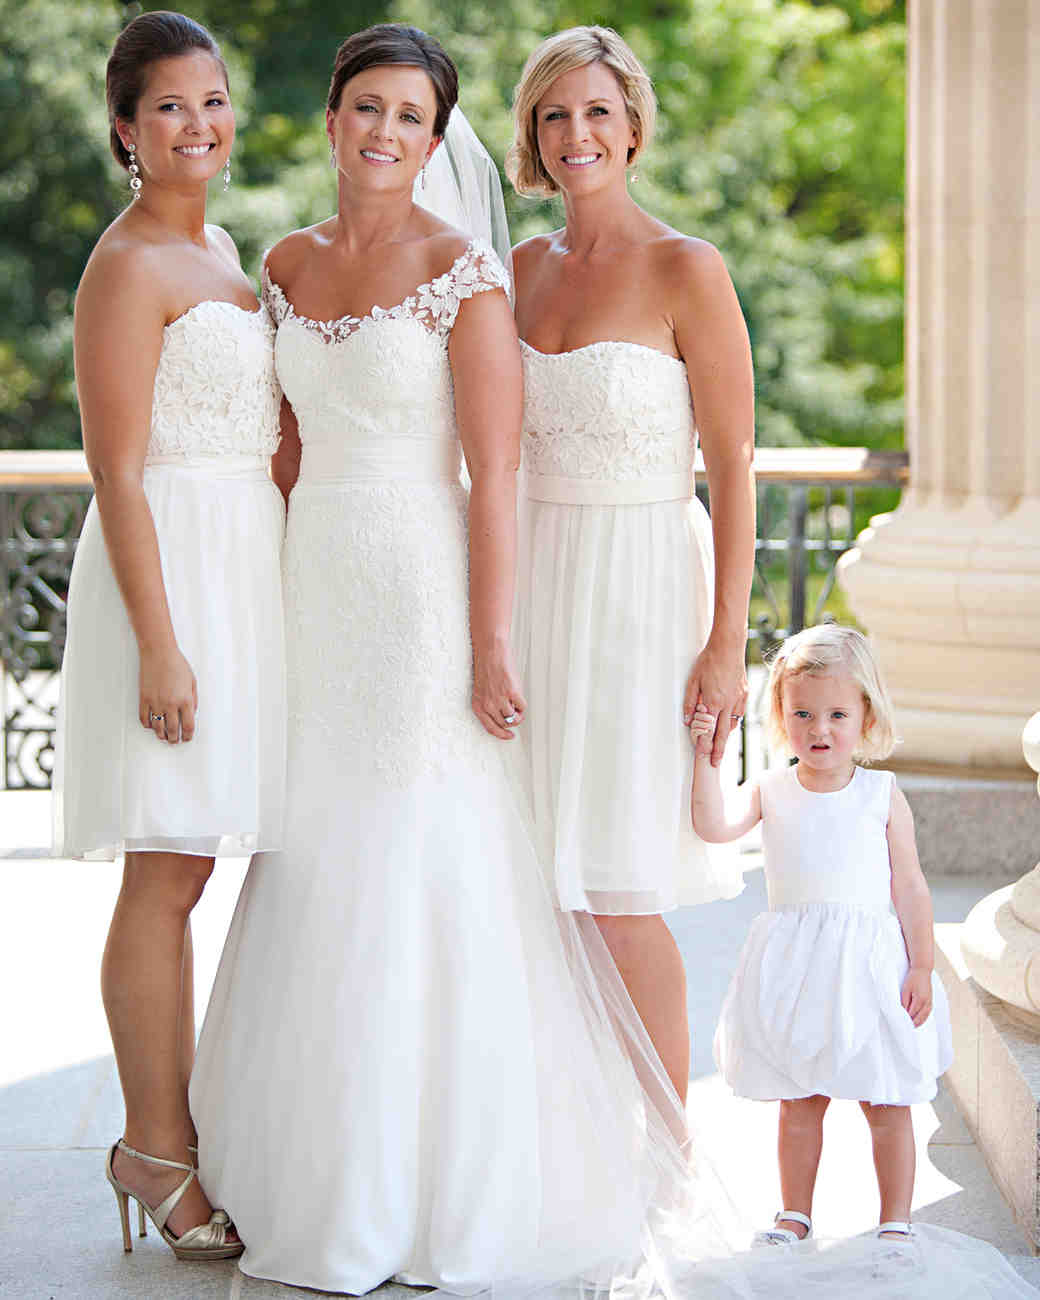 Bride Standing with Family Members